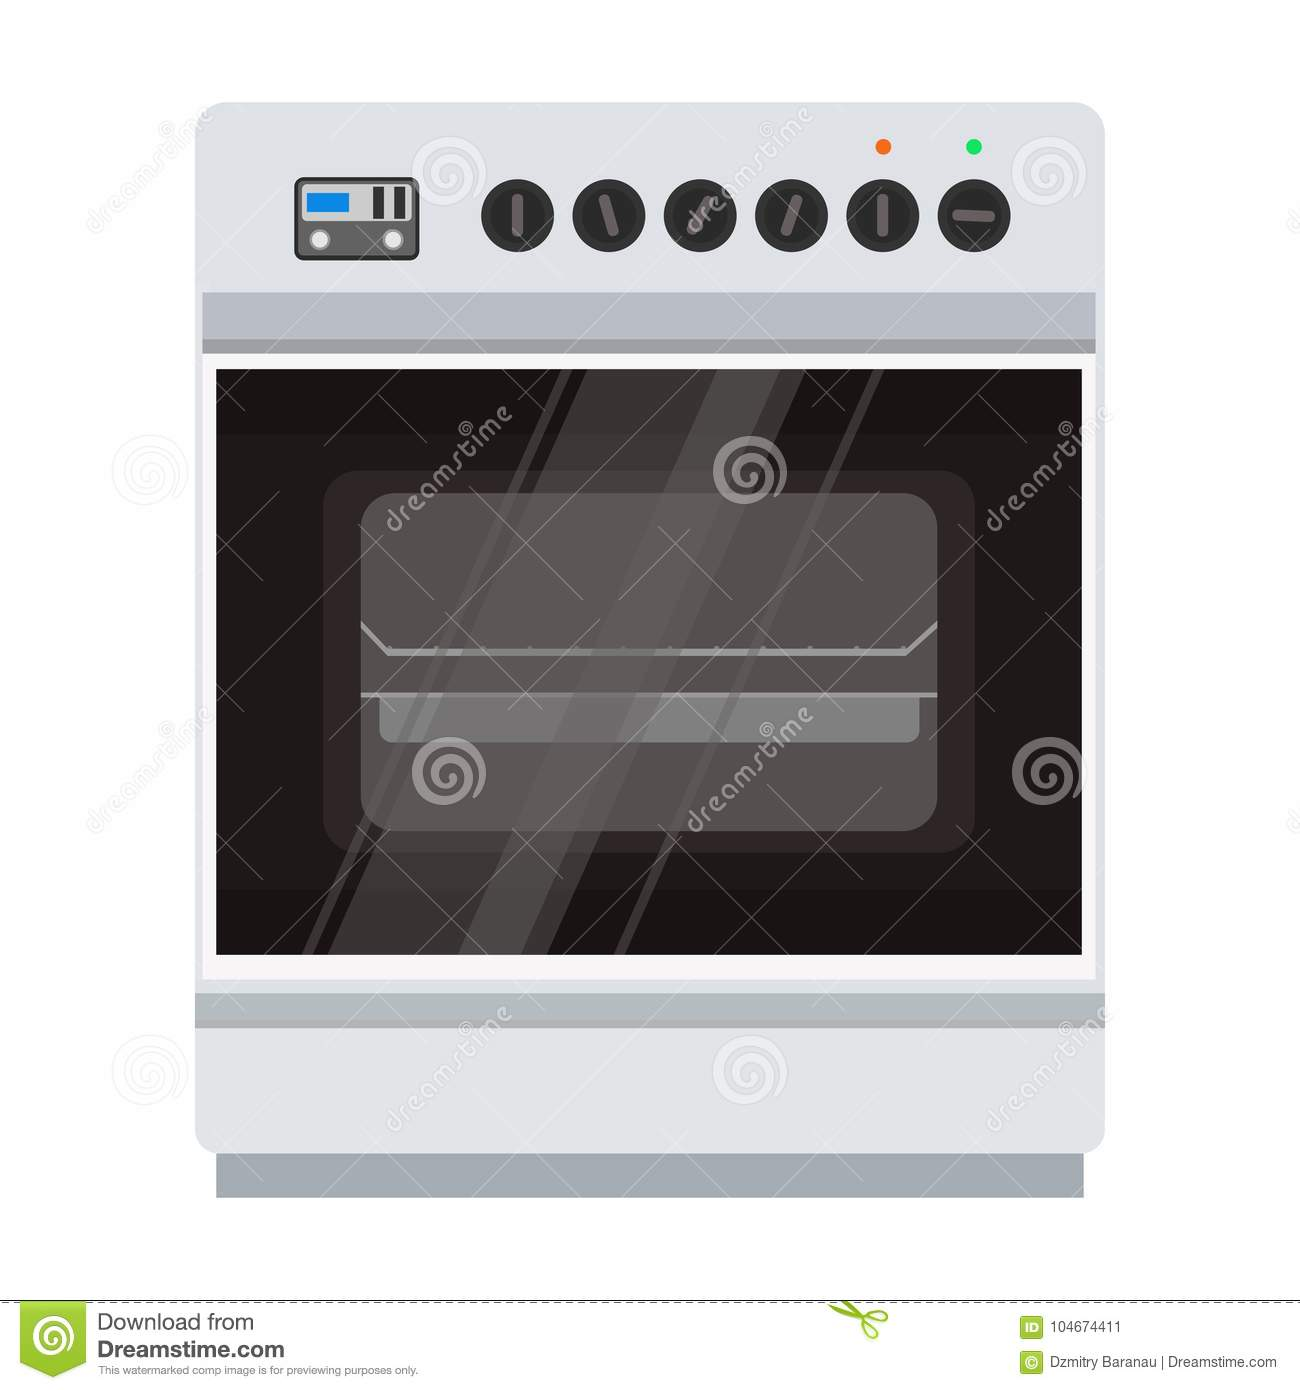 Oven stove vector icon illustration. Food cooking kitchen pizza